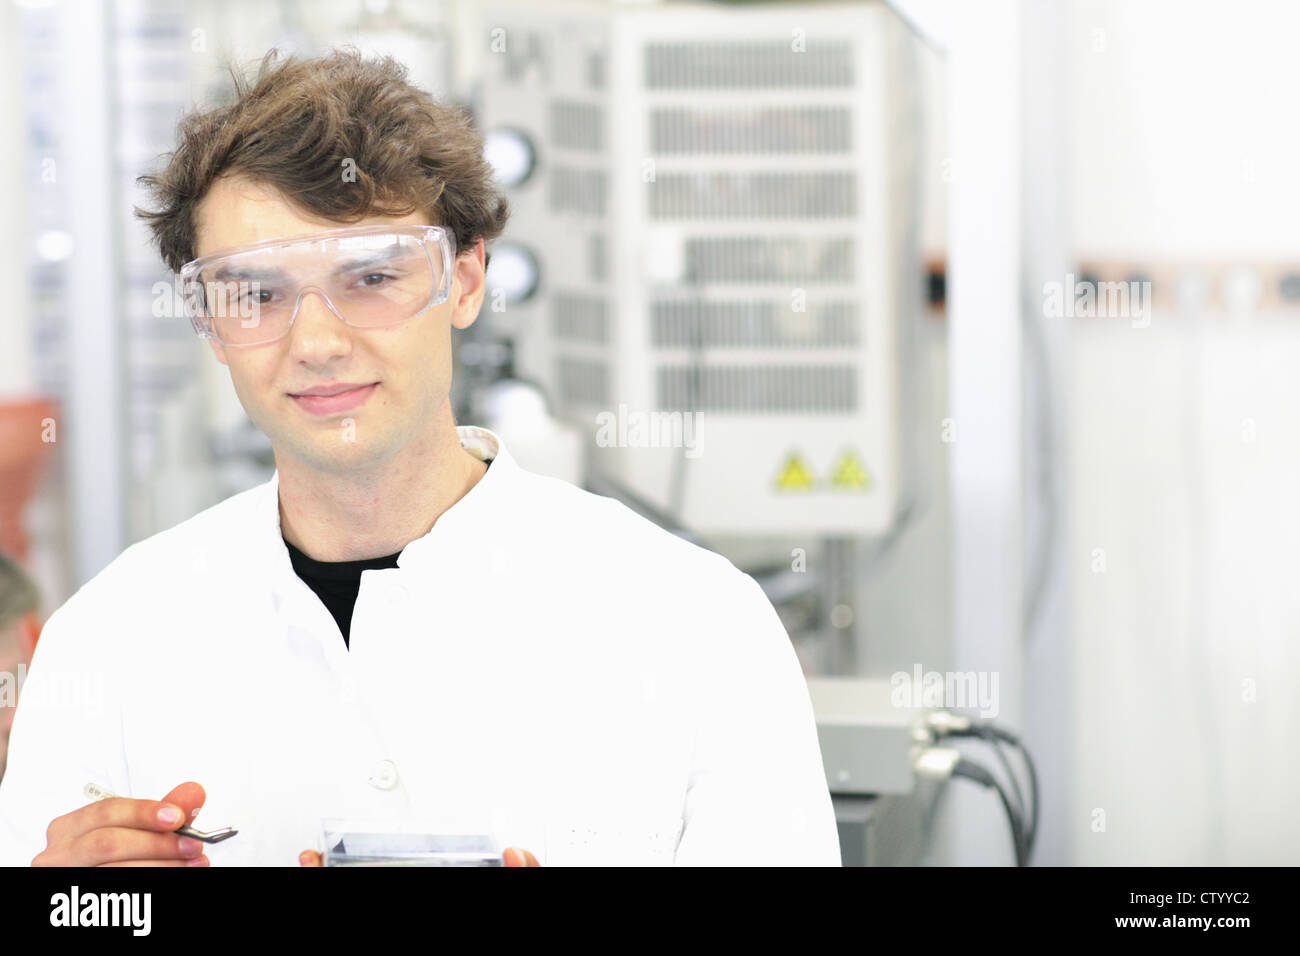 Scientist wearing safety goggles in lab - Stock Image